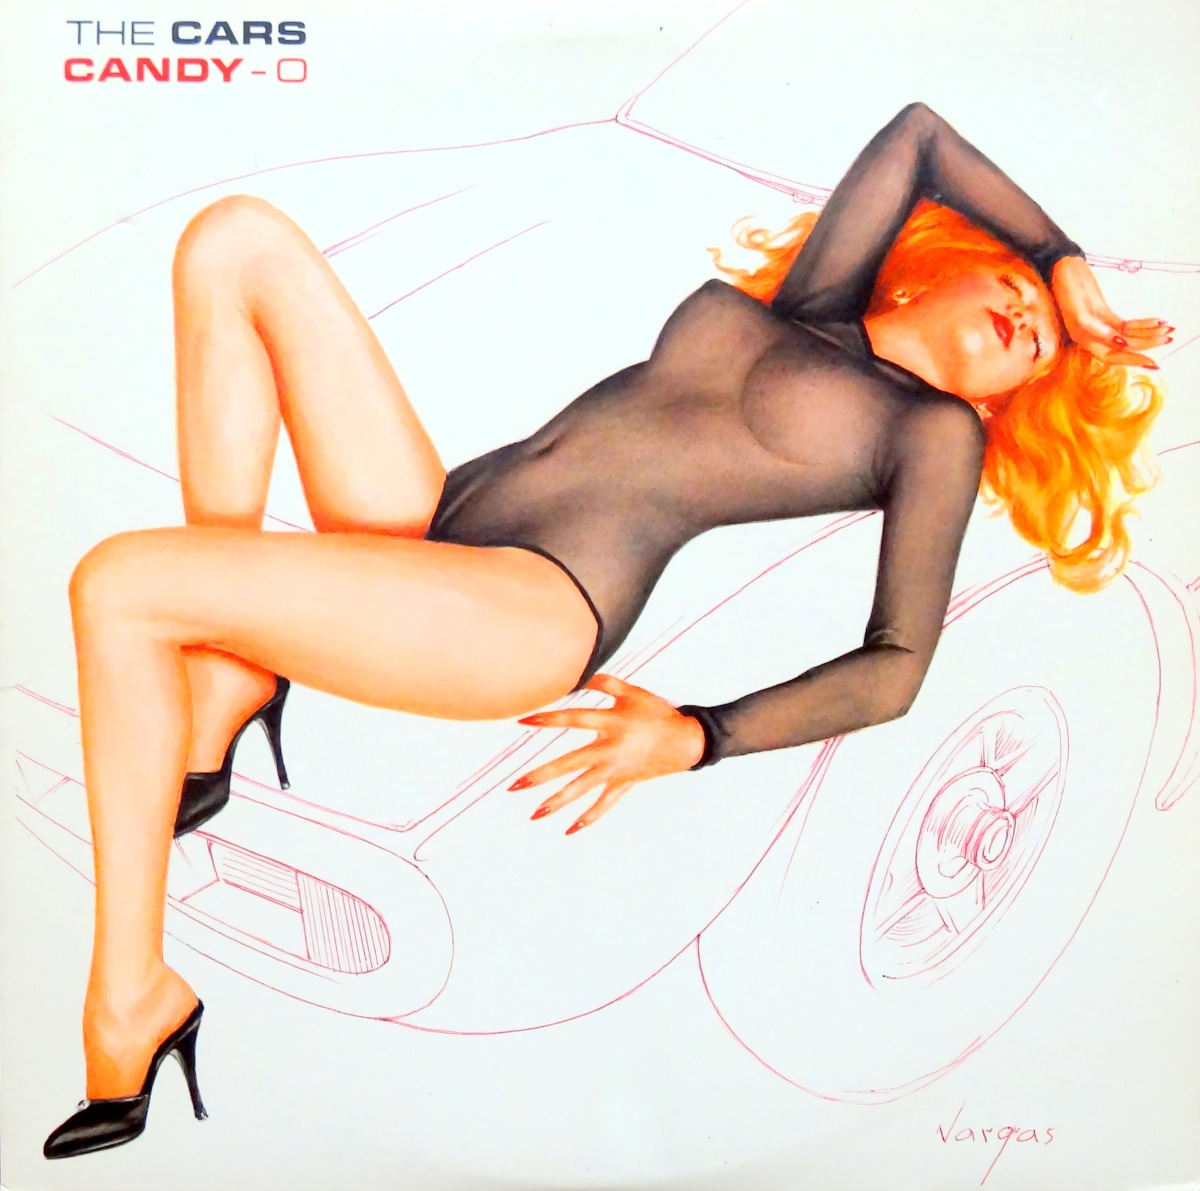 Cheesecake Cover of the Week: The Cars, 'Candy-O'